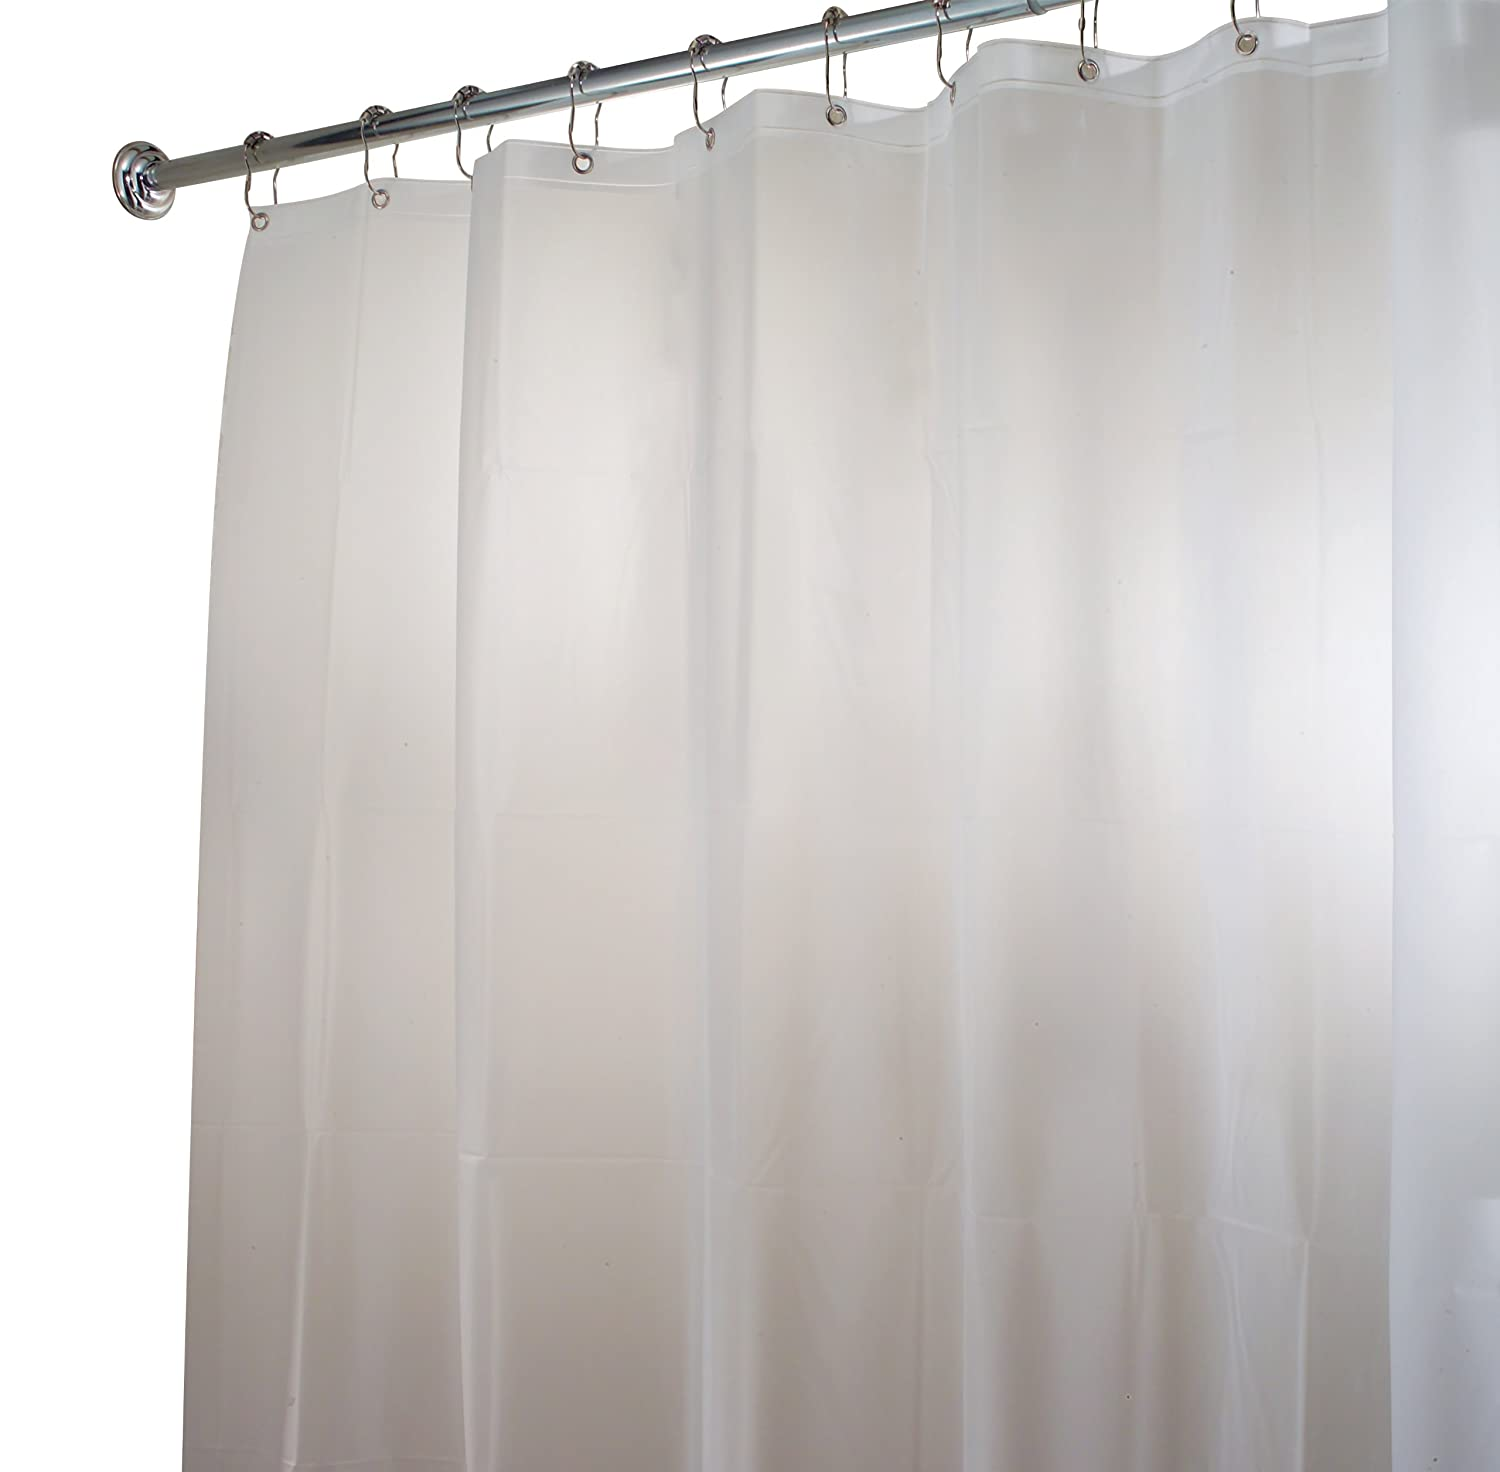 Amazon.com: Shower Curtain Liners: Home & Kitchen